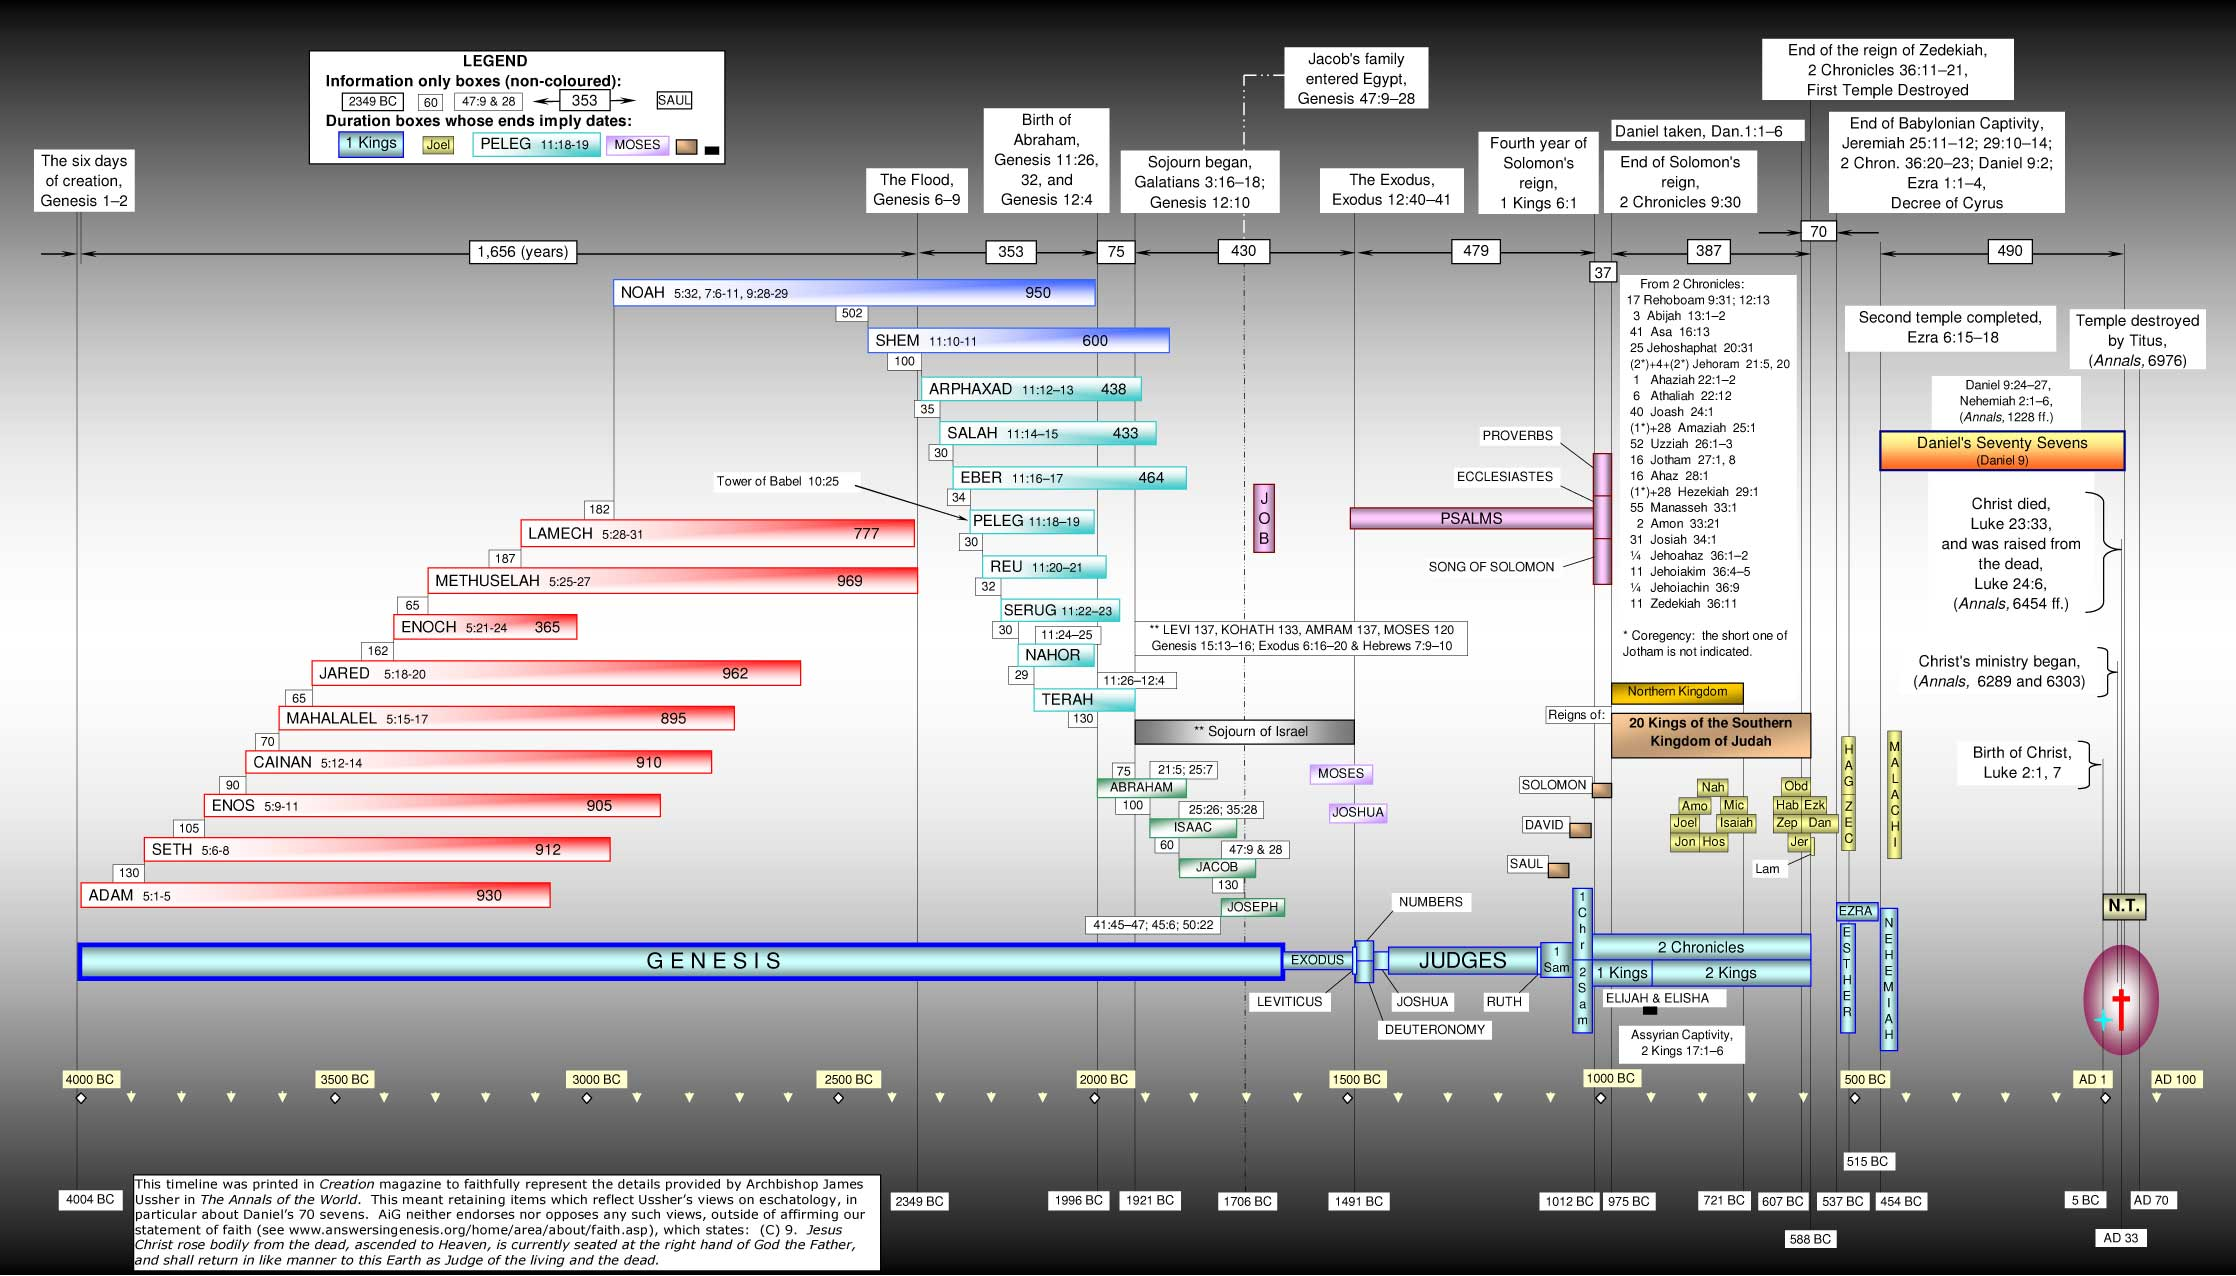 TimelineOfTheBible-Ussher